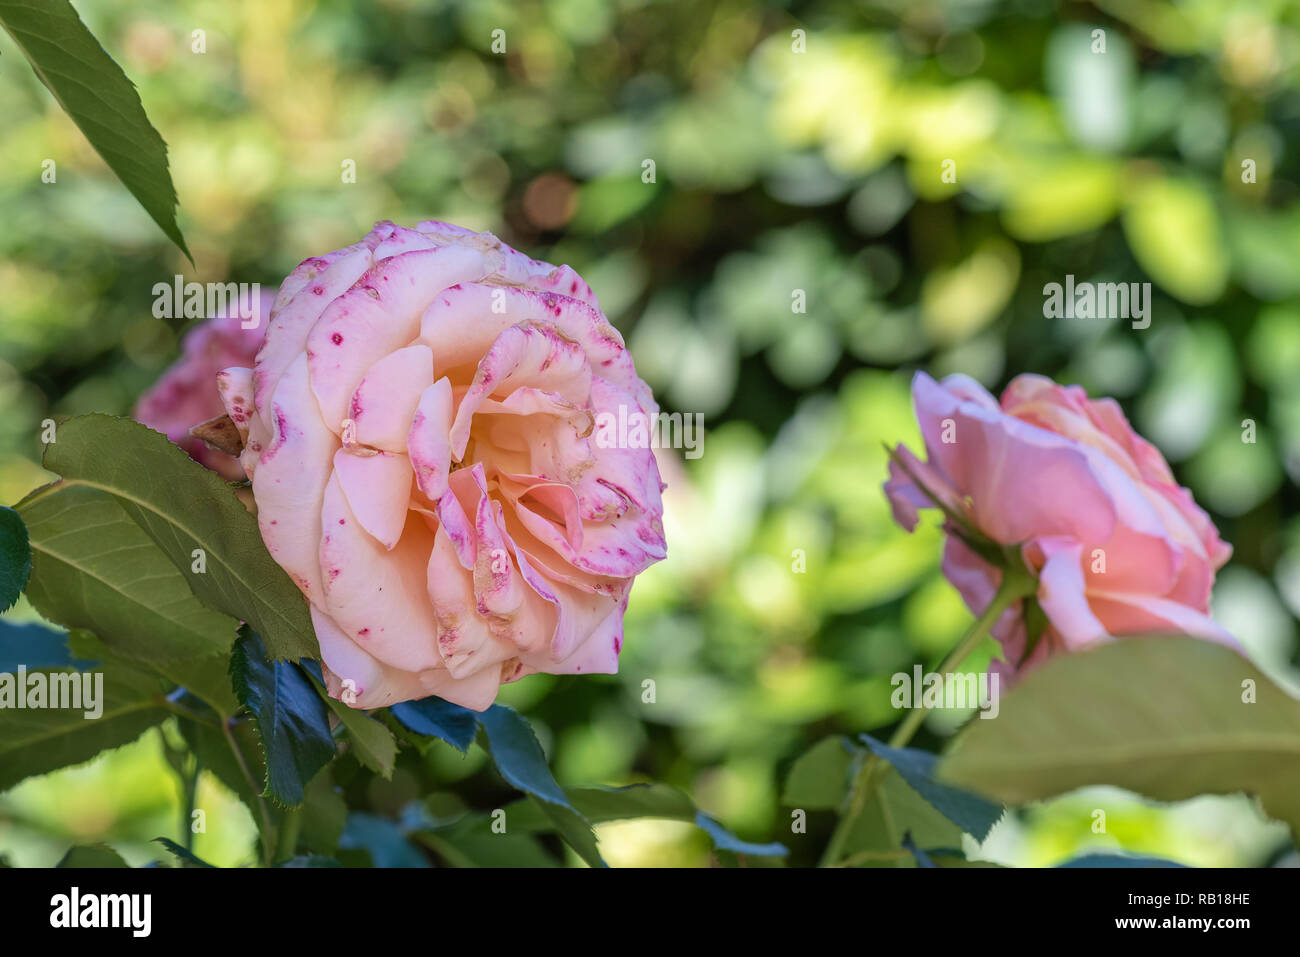 Color outdoor floral macro of a single pink white rose  speckled/flecked blossom on natural blurred green background,detailed texture,sunny summer day - Stock Image